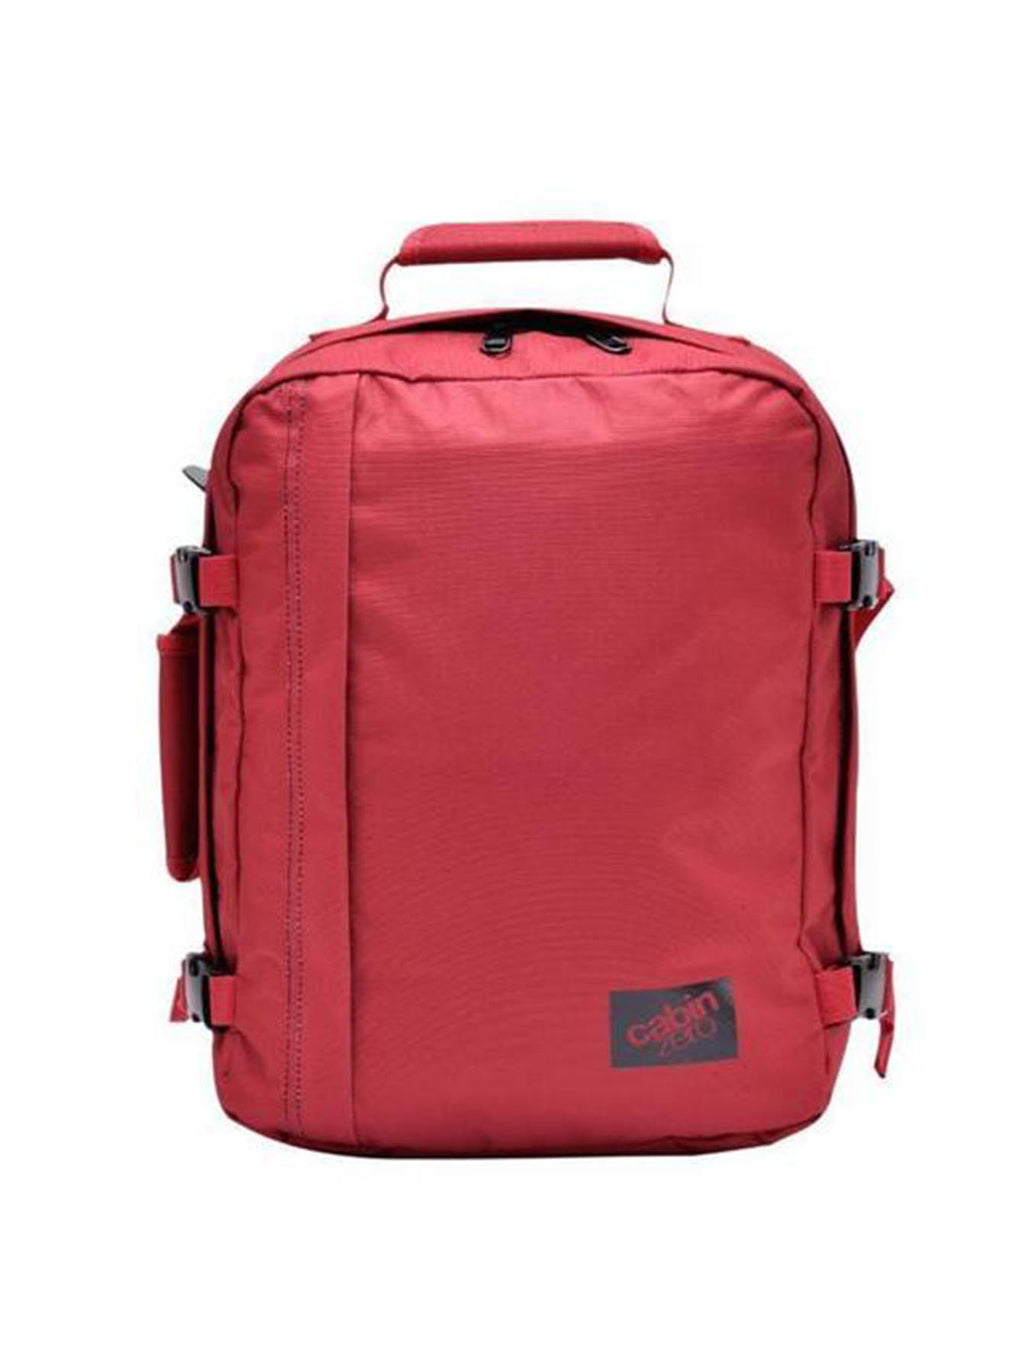 Cabinzero Classic 28L Ultra-Light Cabin Bag in Naga Red Color